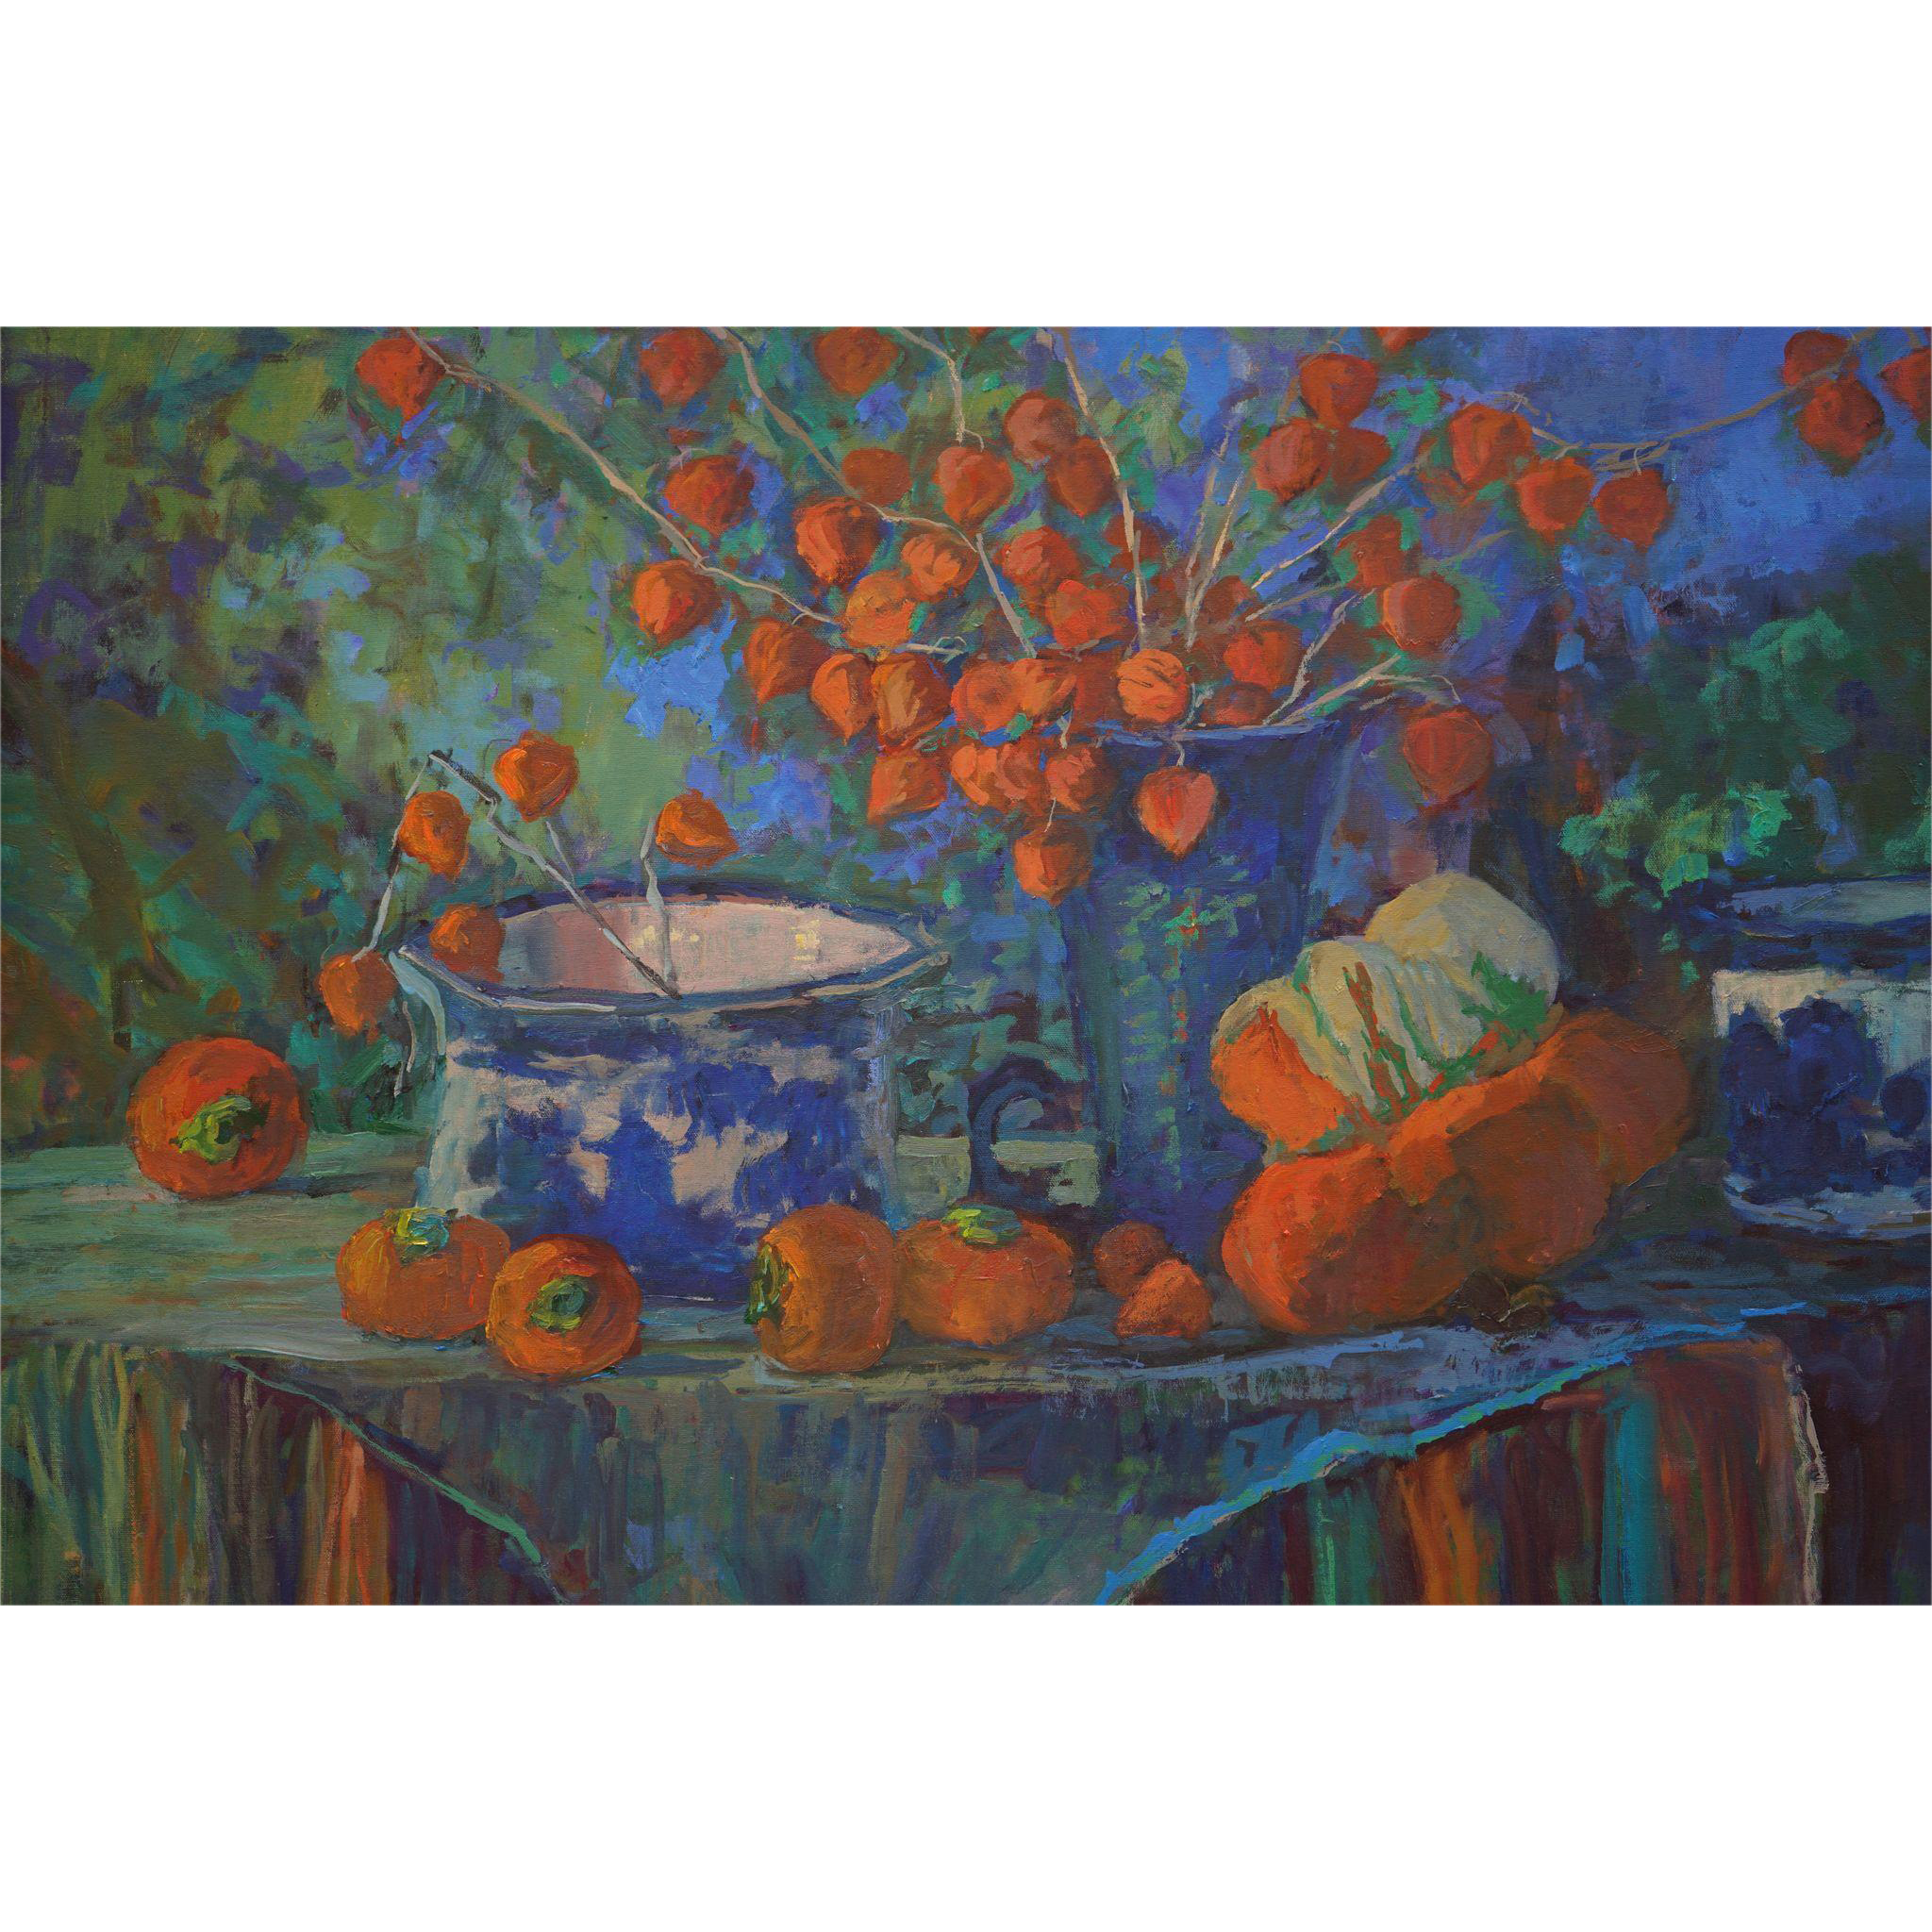 Still Life Painting With Turban Squash and Chinese Lantern